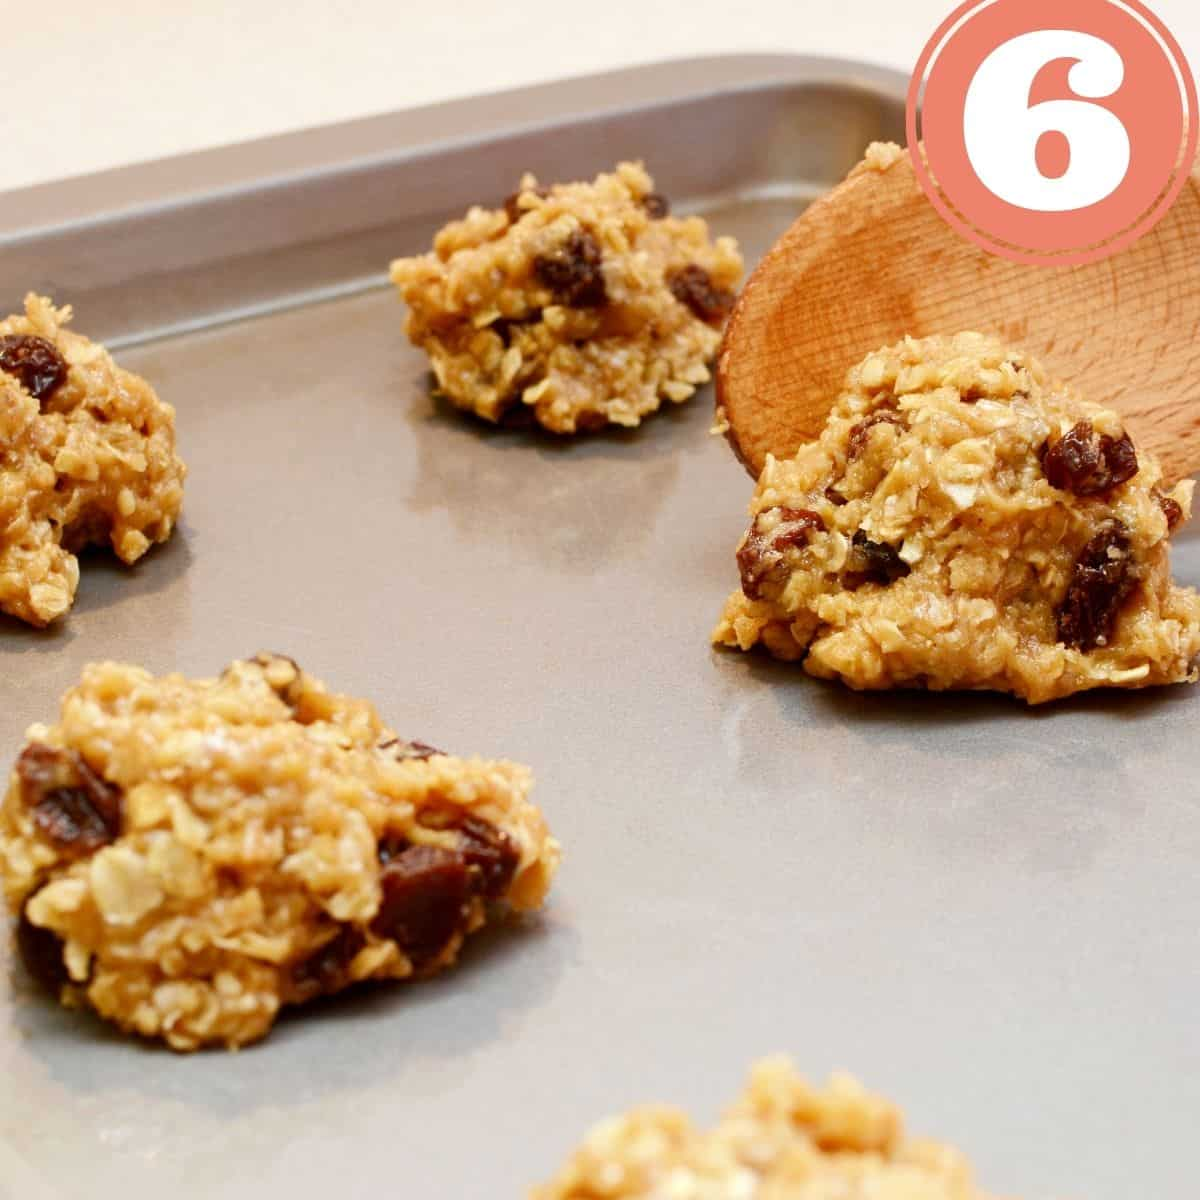 Chocolate chip oatmeal cookie batter dollops on a baking sheet with a wooden spoon